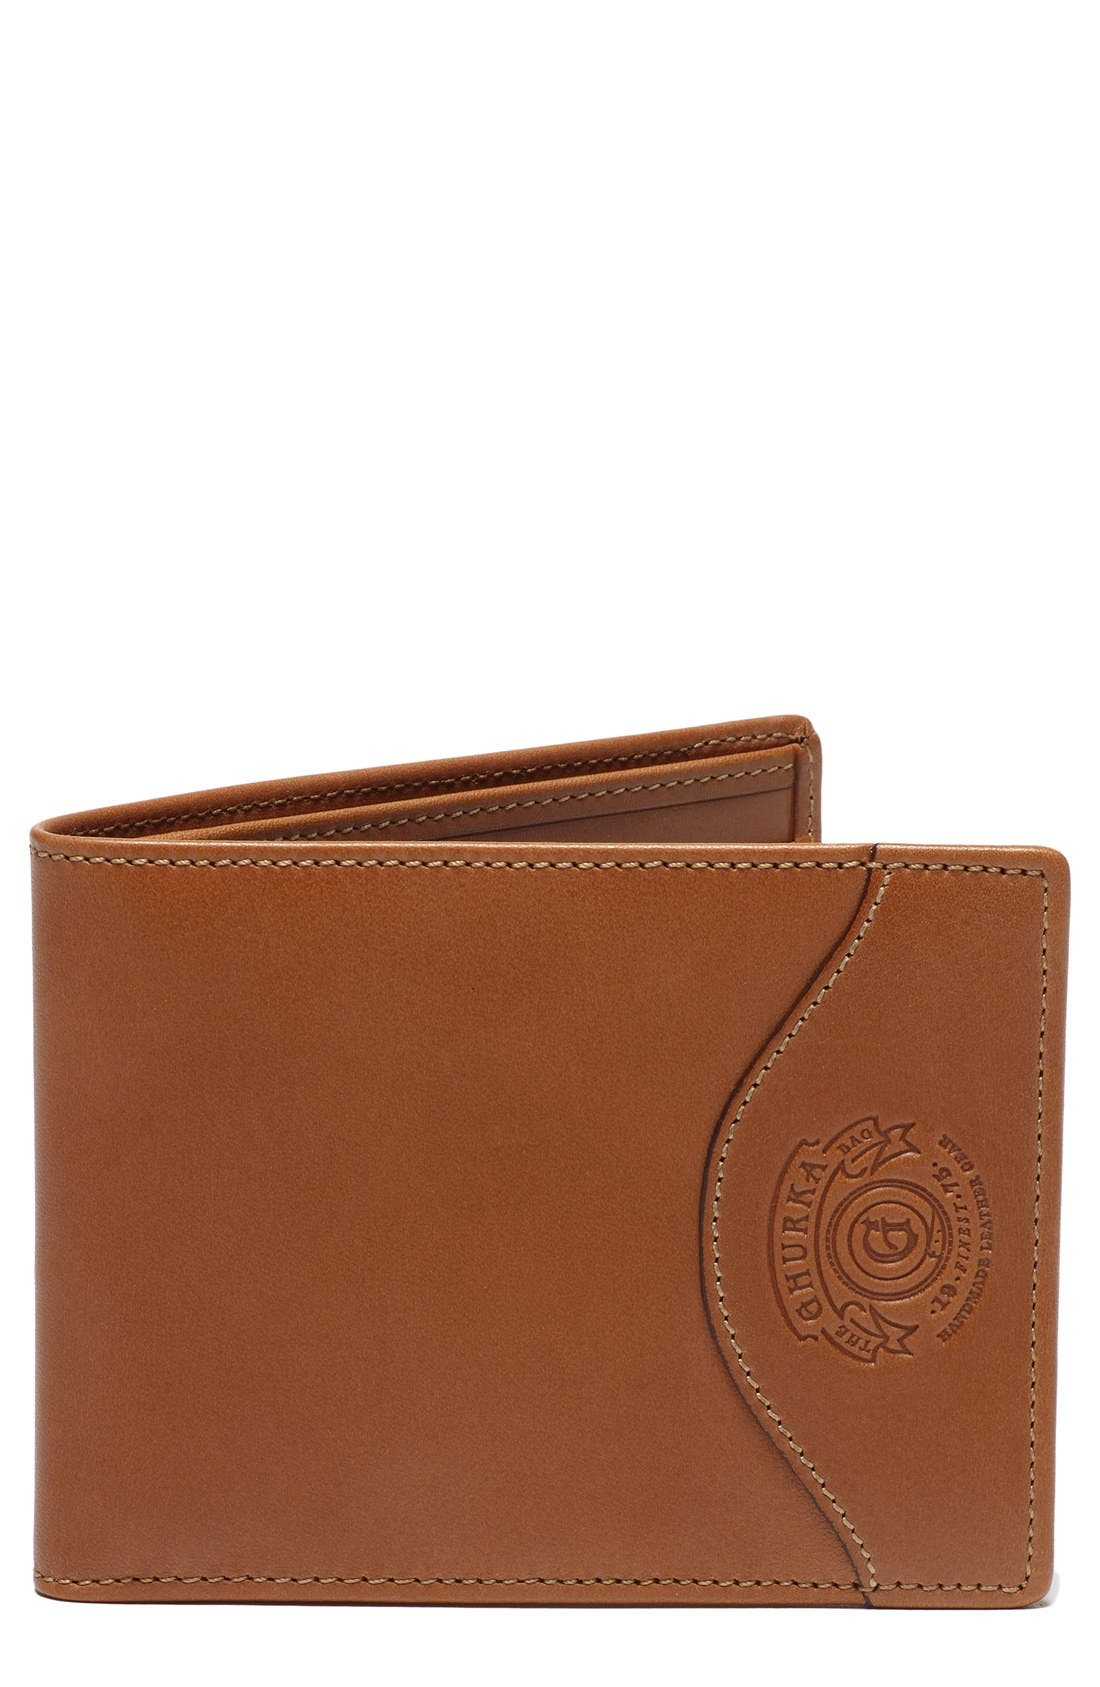 Main Image - Ghurka Leather Wallet with ID Case